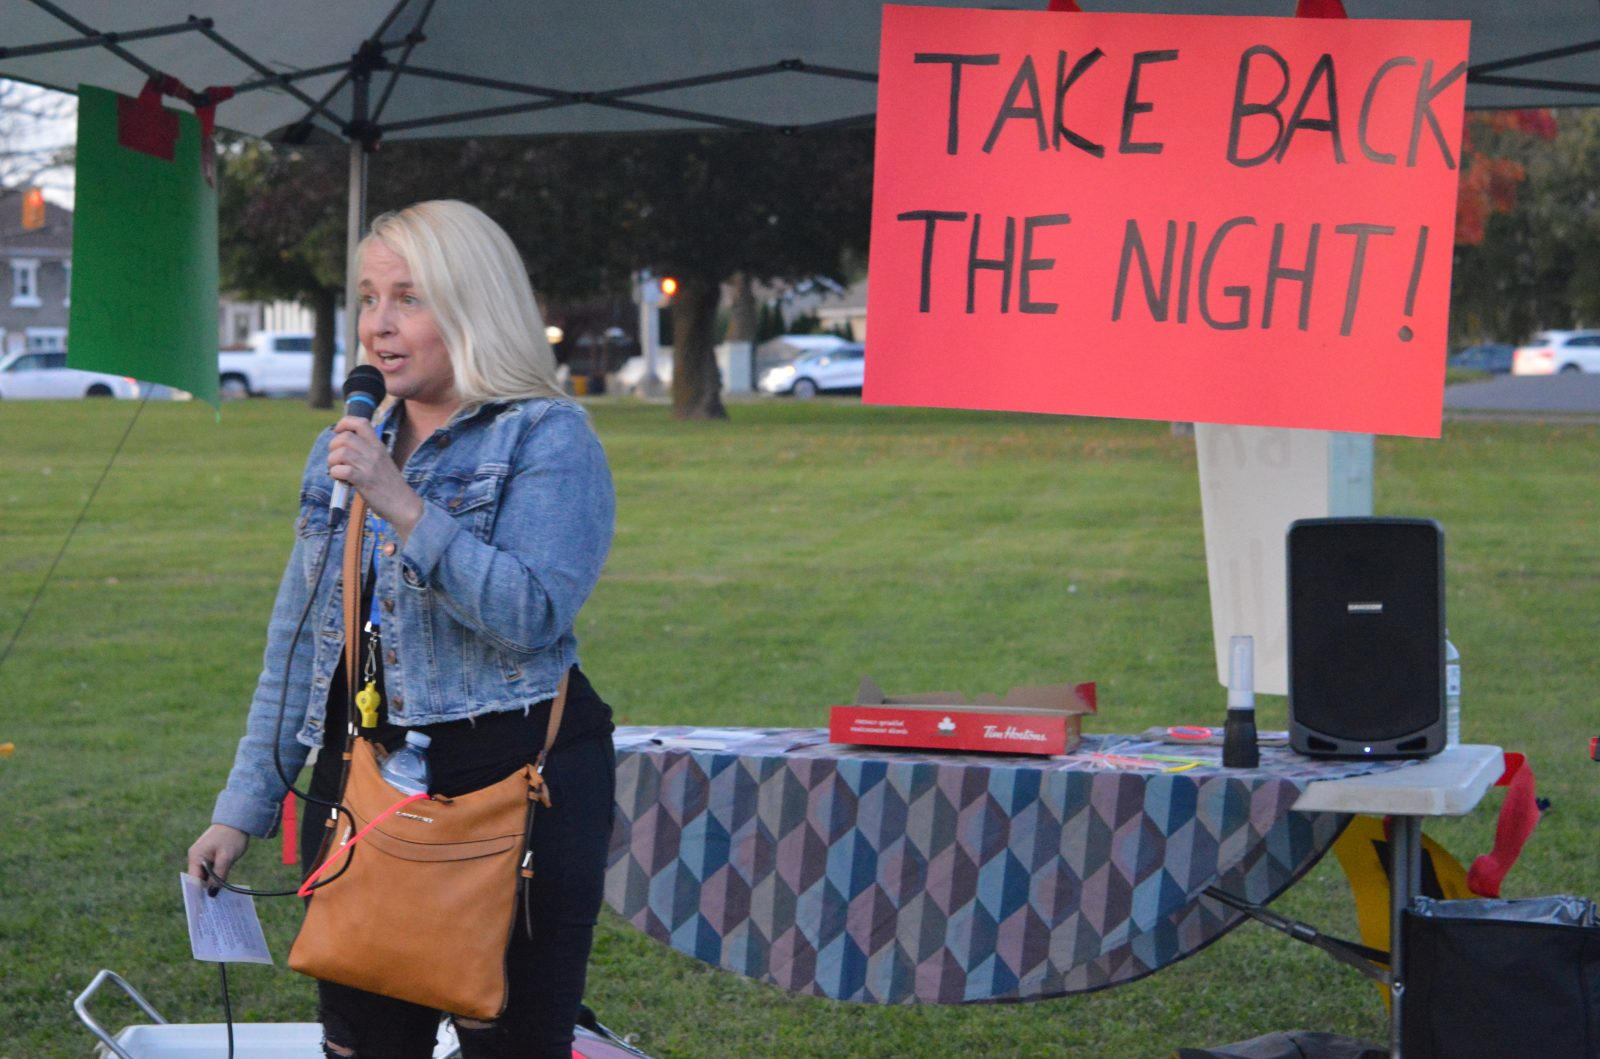 Powerful stories shared at Take Back the Night